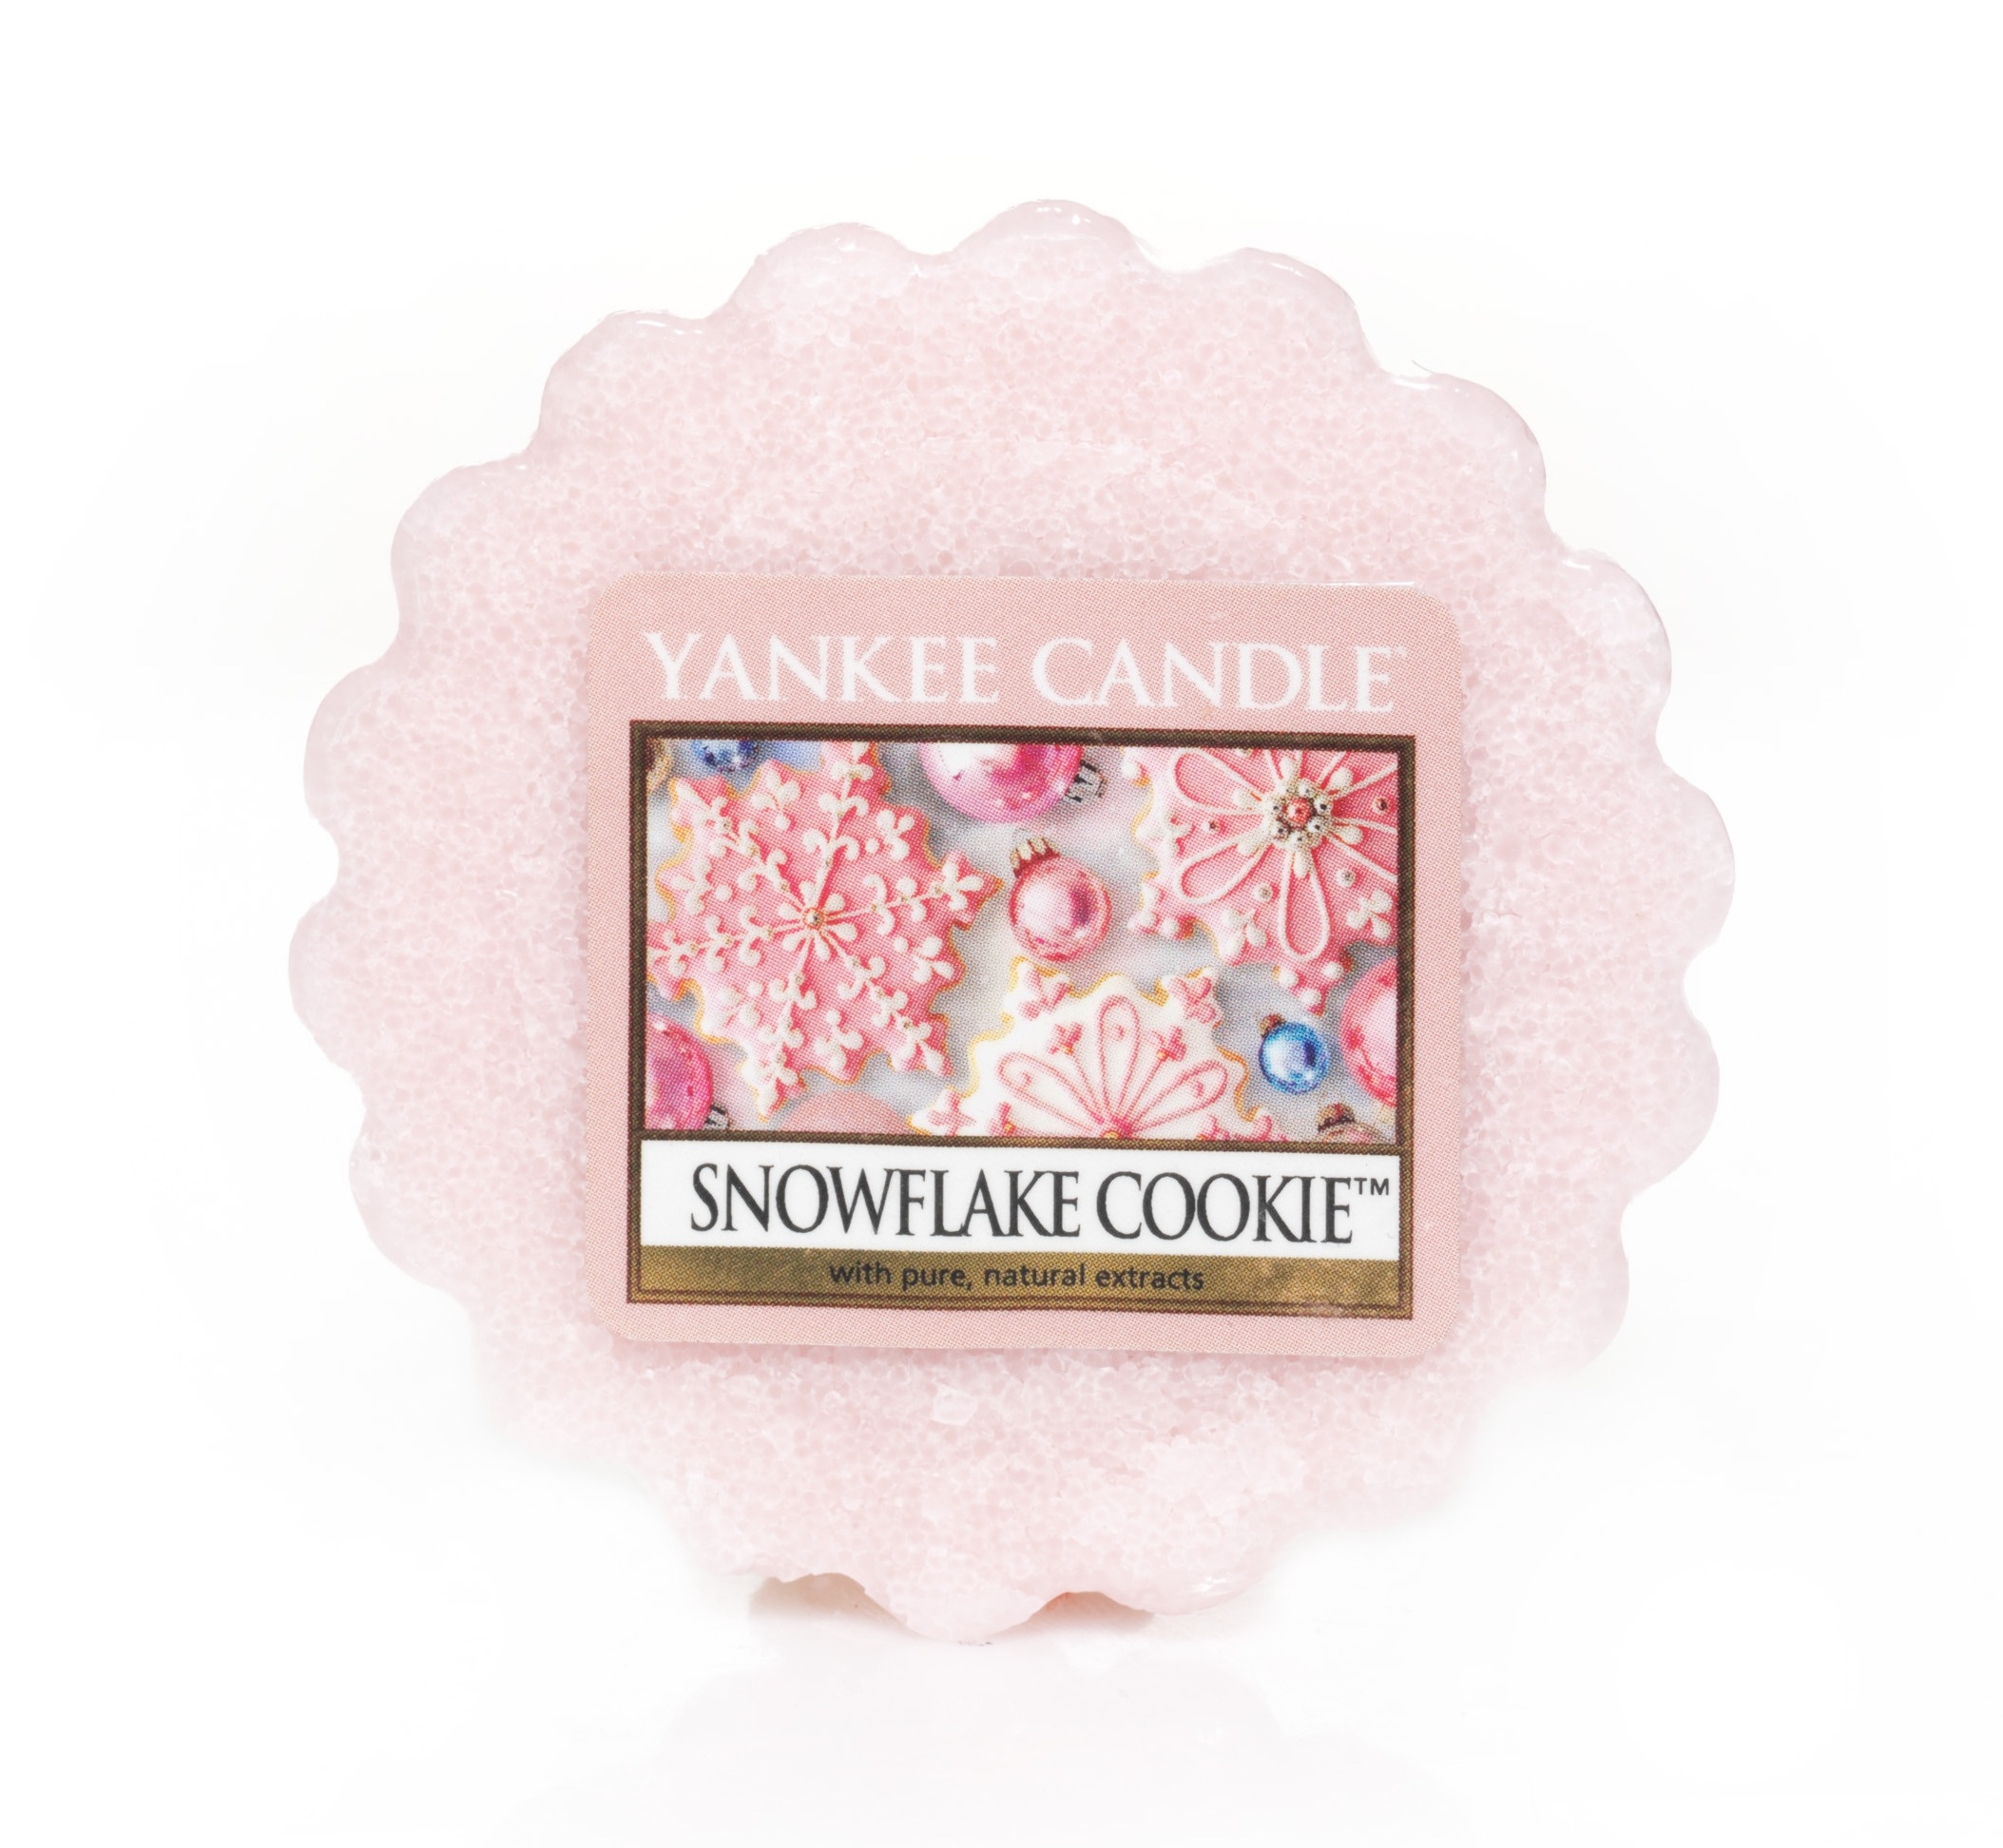 Vosk do aromalampy YANKEE CANDLE Snowflake Cookie